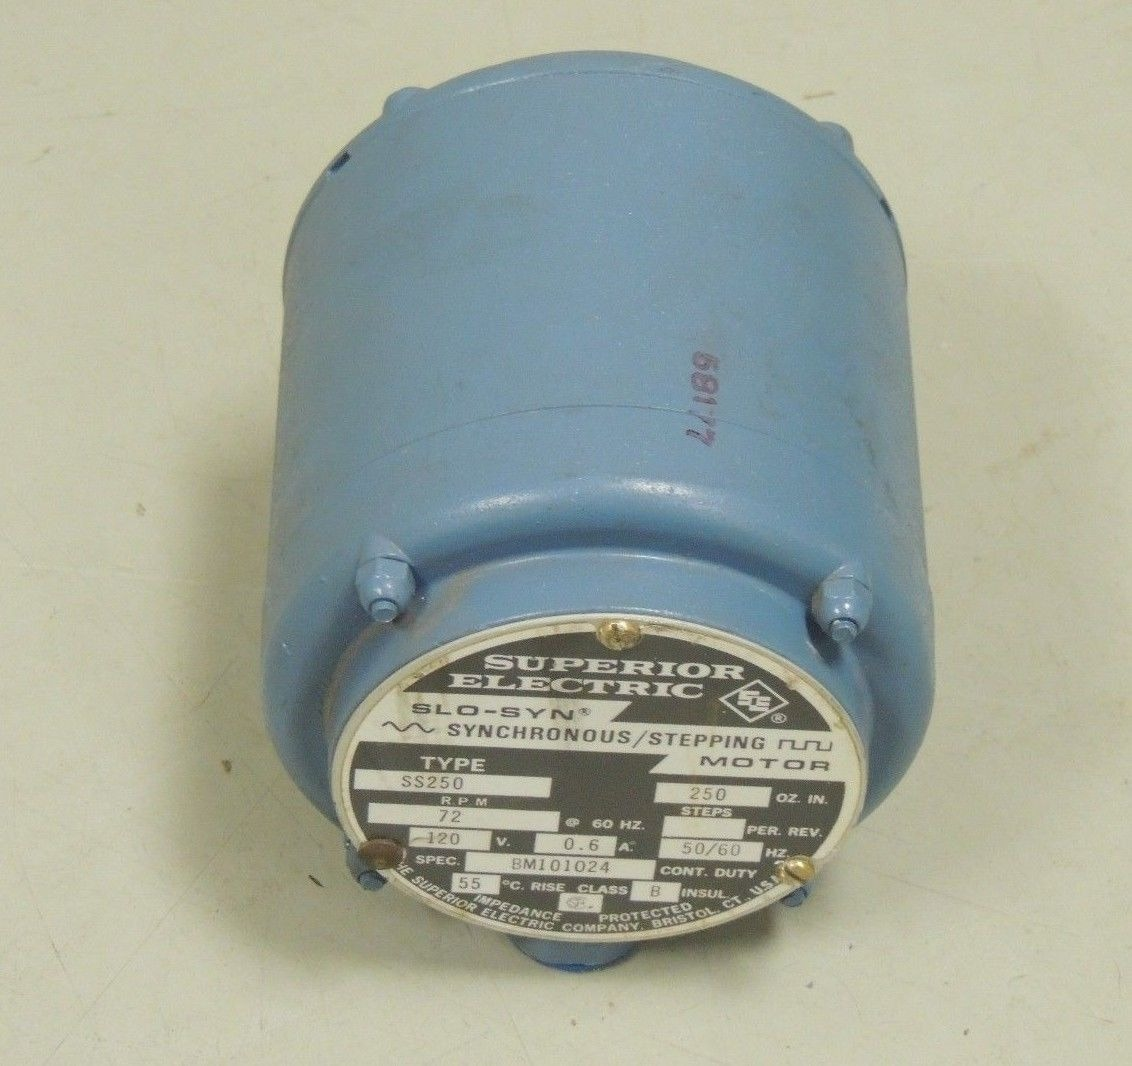 new superior electric slo syn synchronous stepping motor